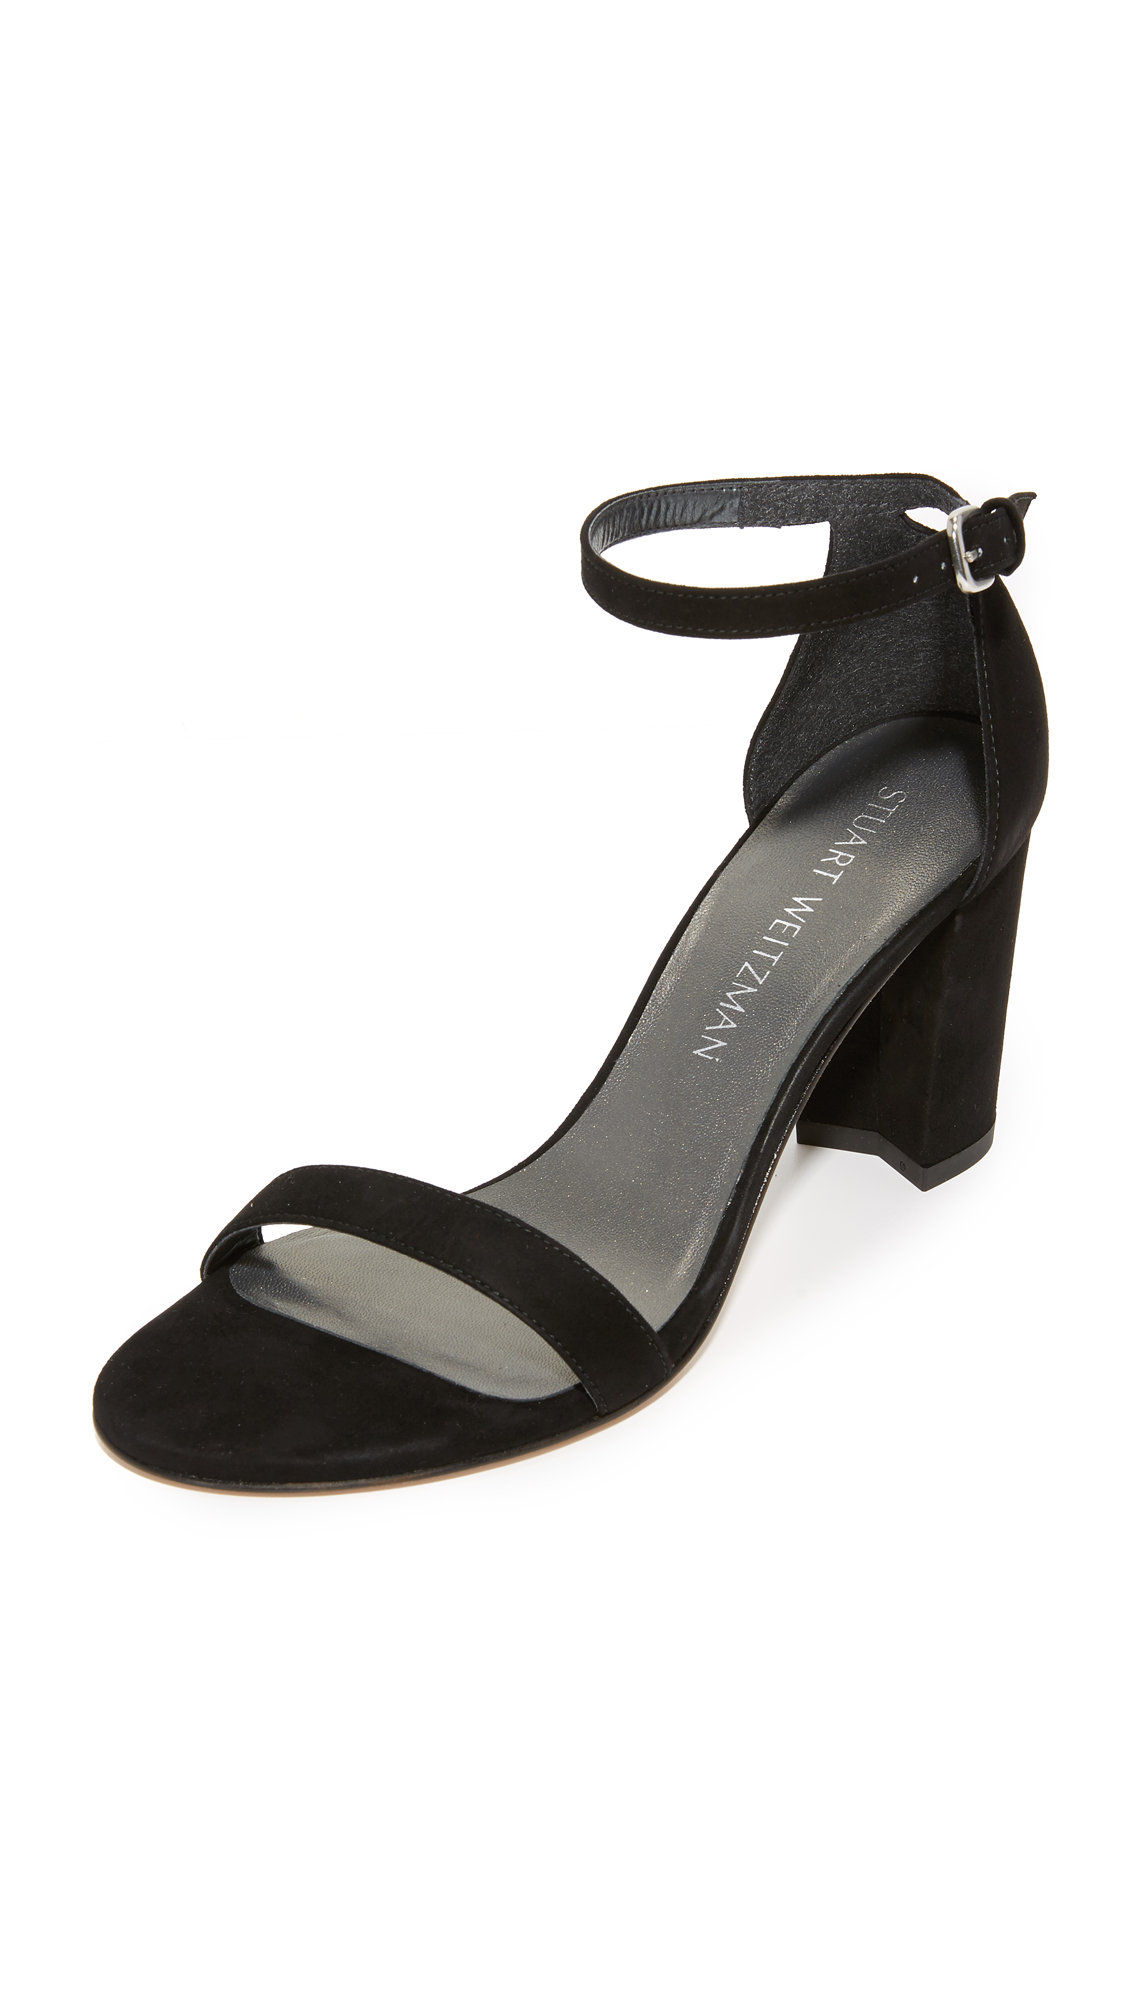 Stuart Weitzman Nearlynude Sandals - Black